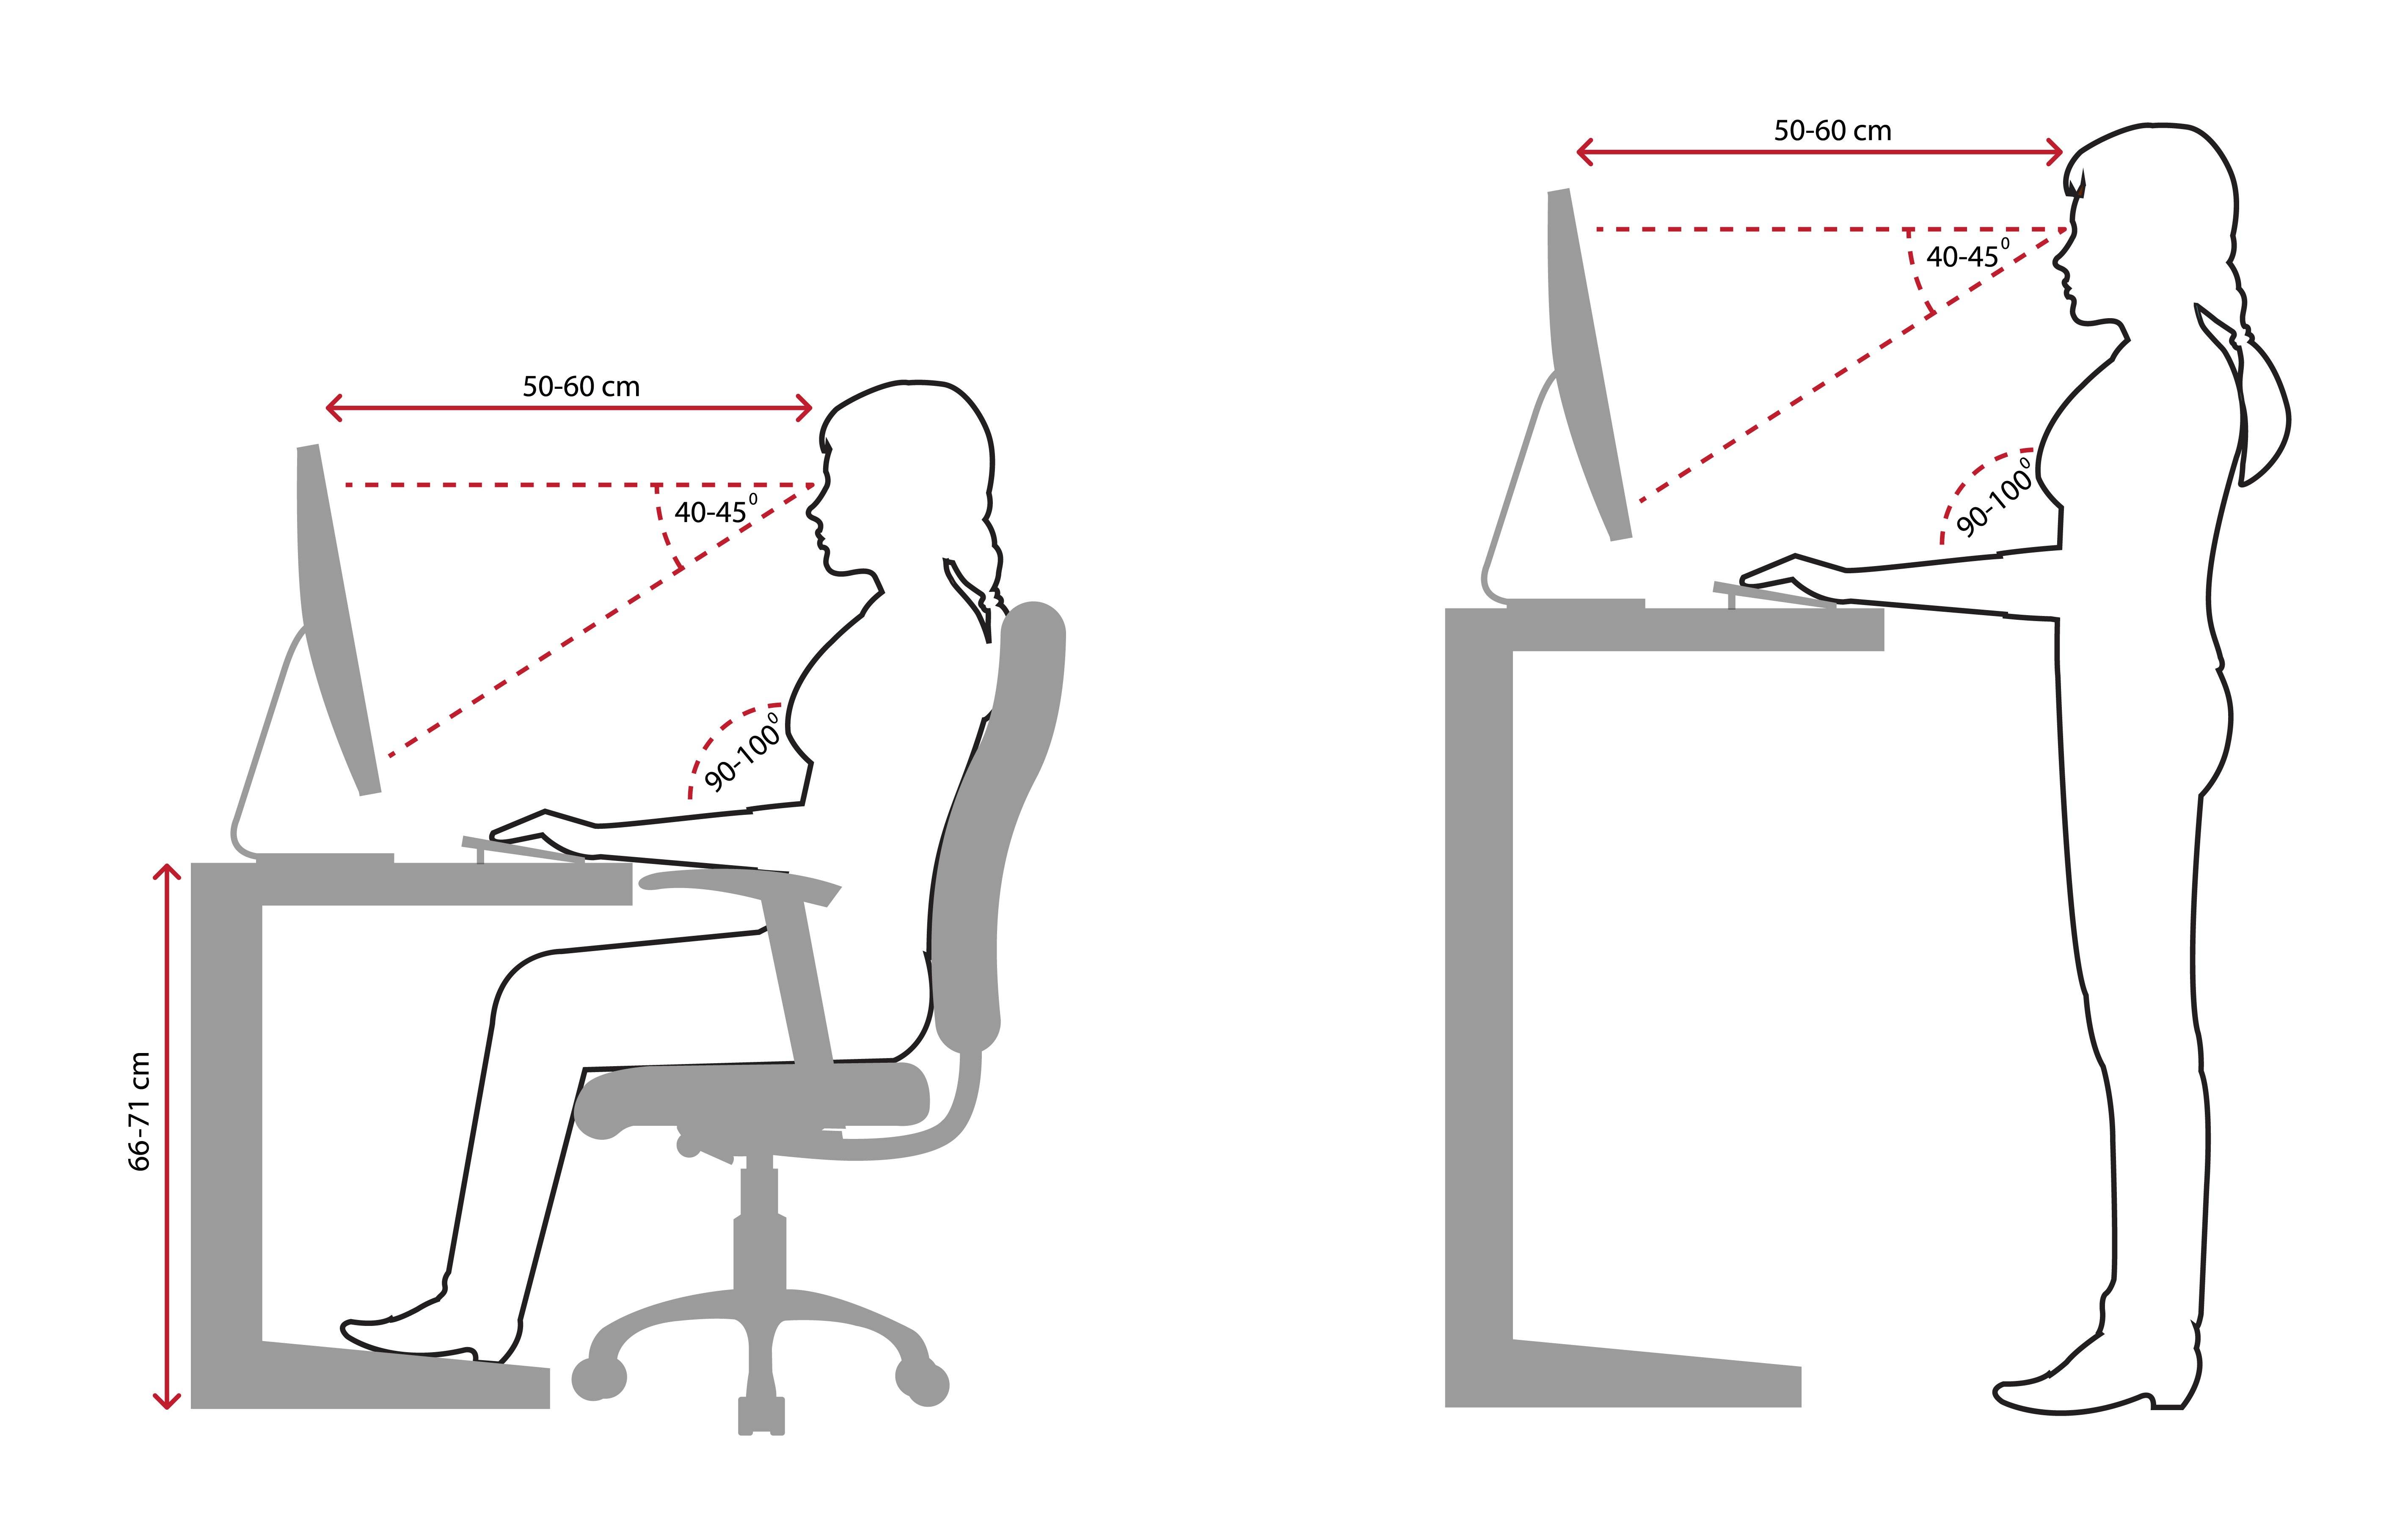 Ergonomics diagram - woman line drawing correct sitting and standing posture when using a computer